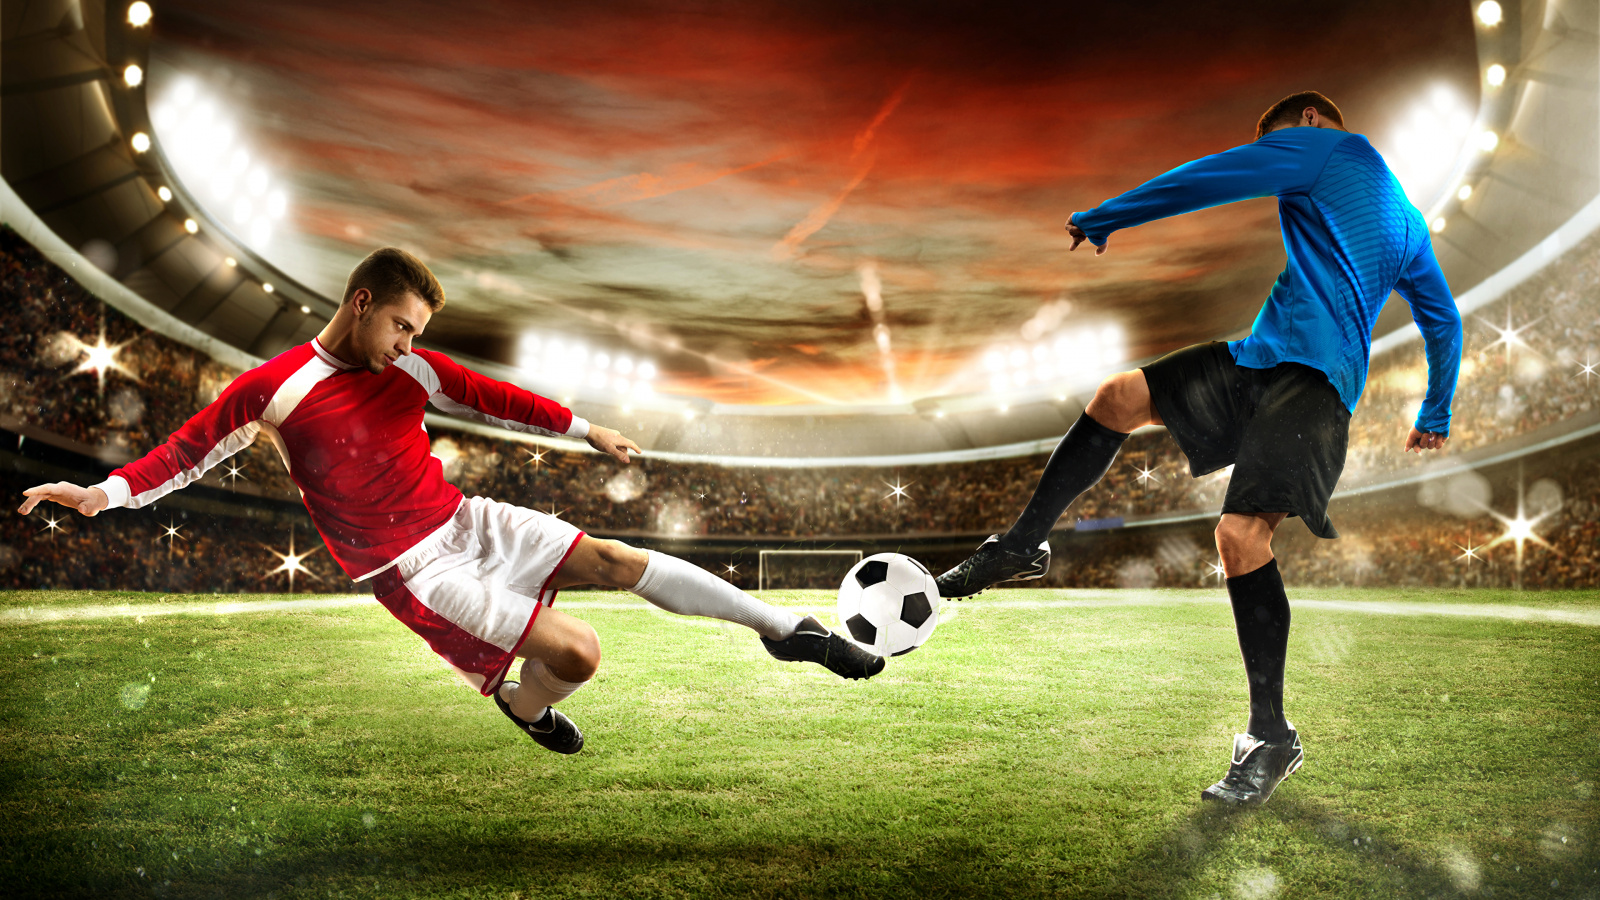 Sbobet online as the reliable agent to play online gambling